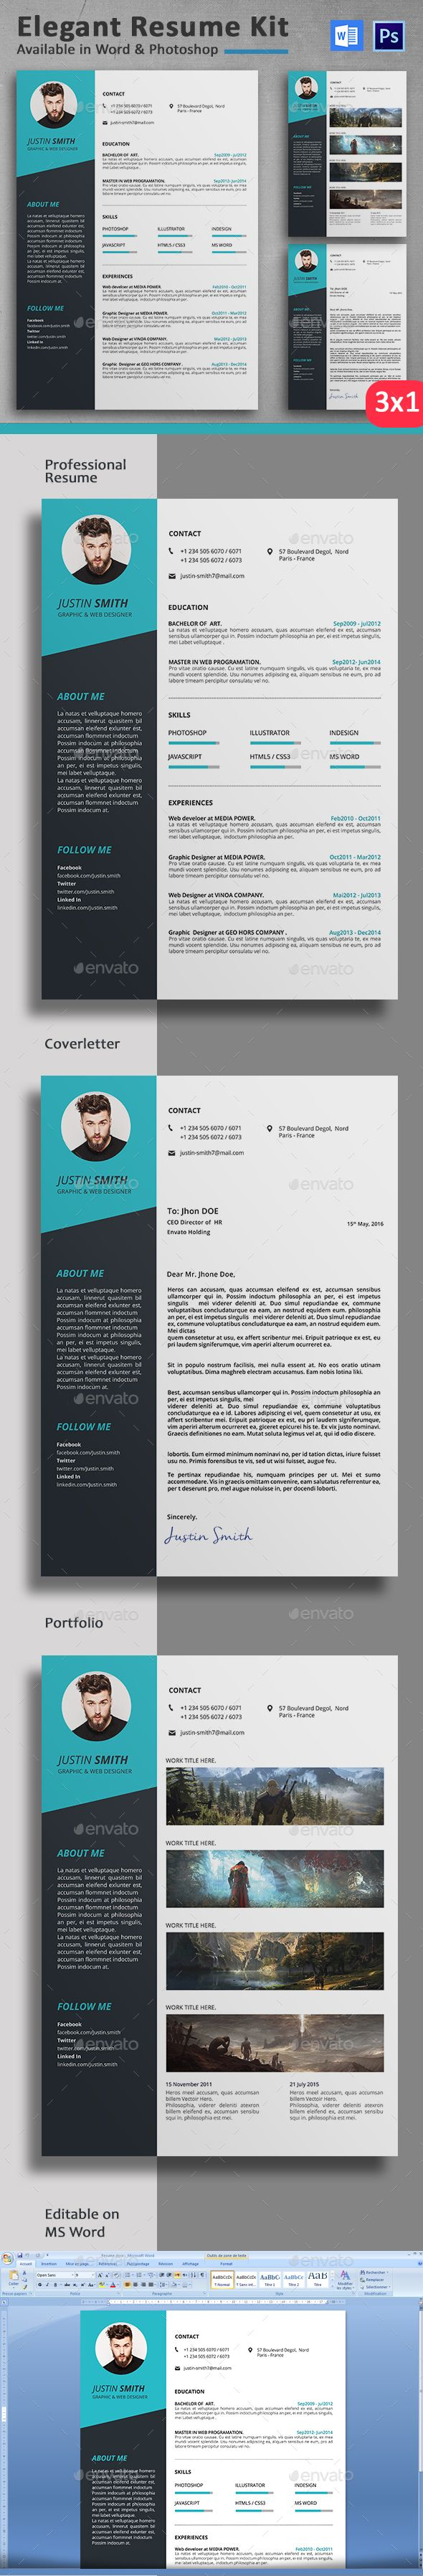 windows resume template windows resume template 4306